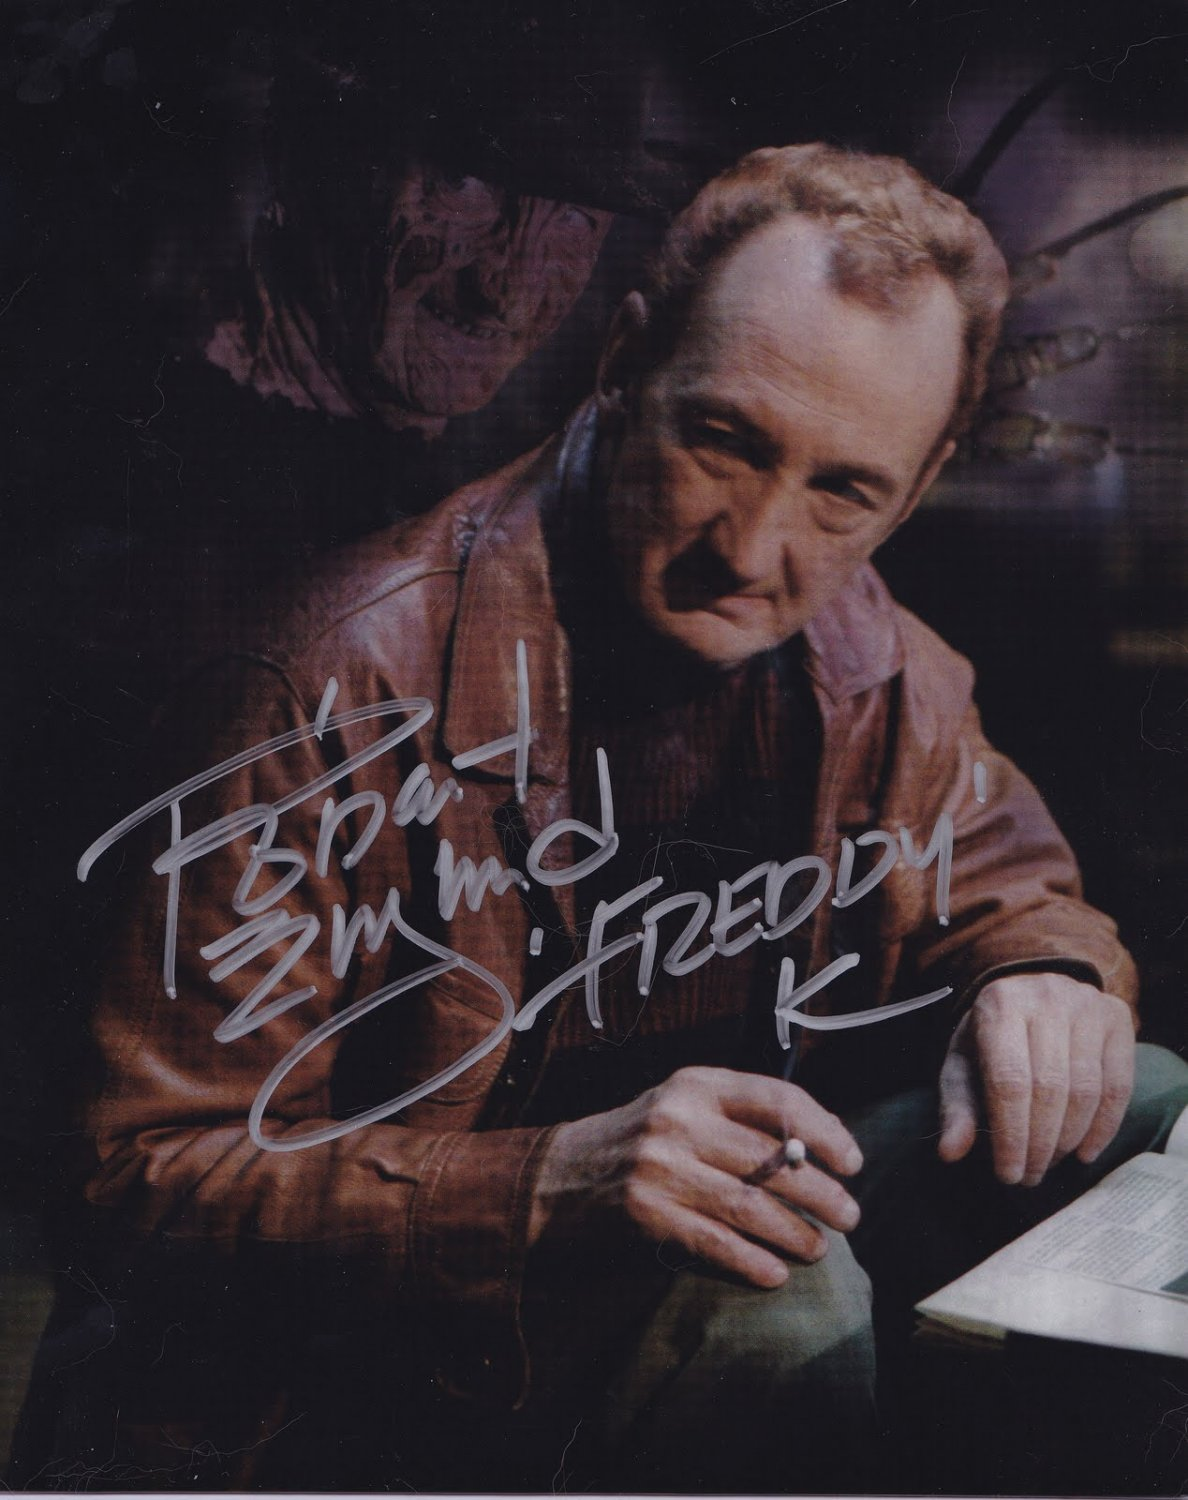 Robert Englund A Nightmare on Elm St Autographed Photo - (Ref:000318)